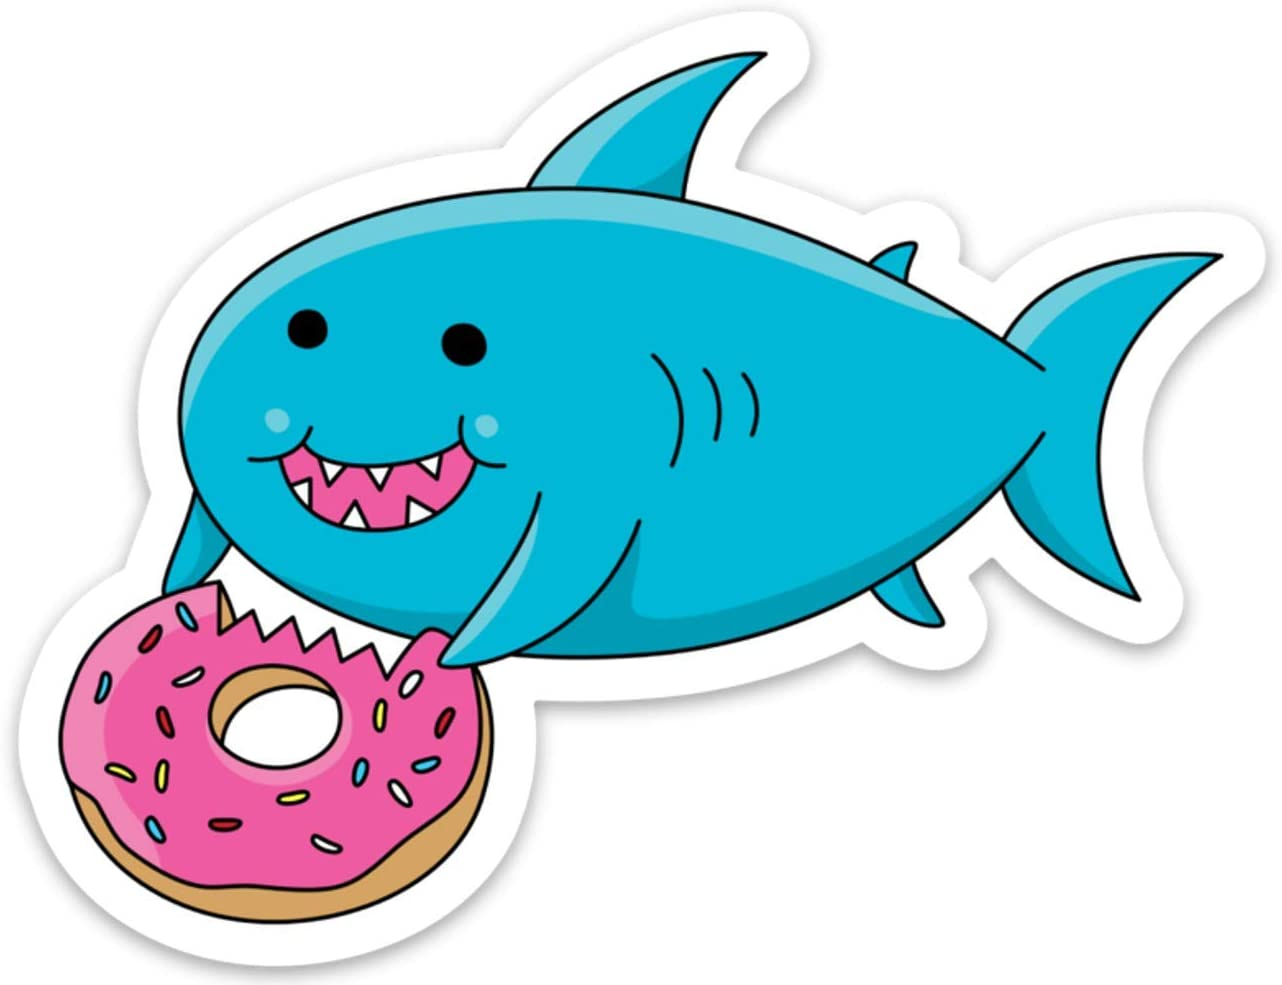 Stickeroonie Sticker Decal Cute Fat Whale Shark Eating Donut Foodie for Laptop Water Bottle etc. 4 x 3 inch